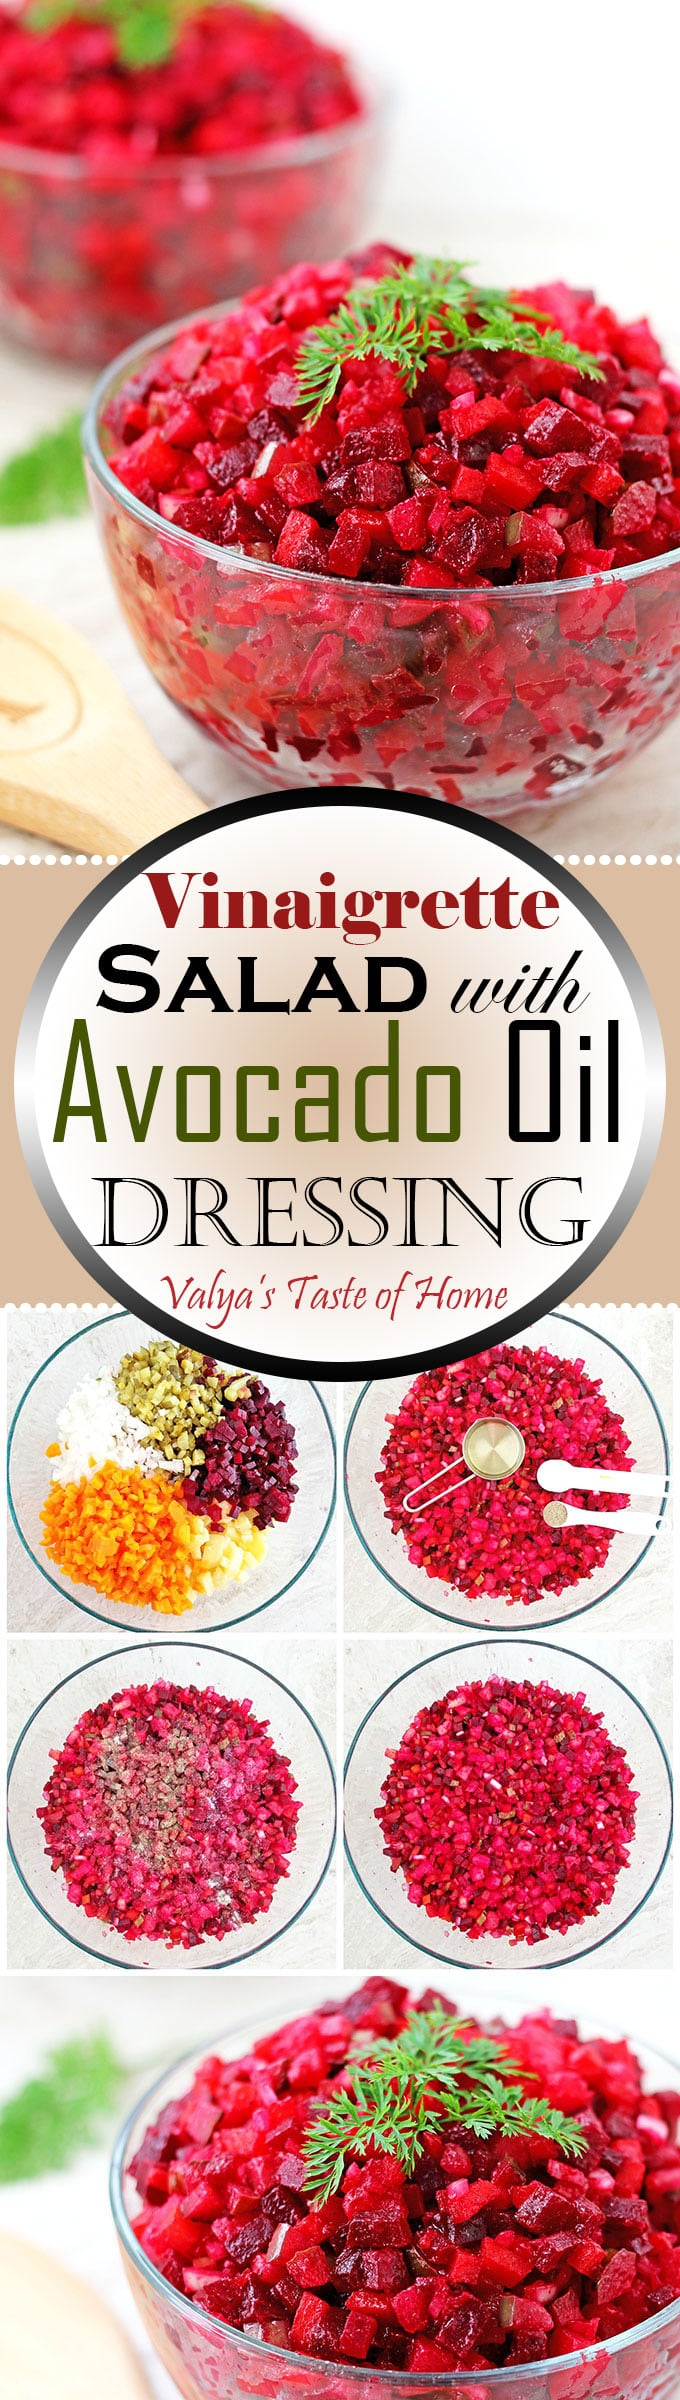 This Vinaigrette Salad with Avocado Oil Dressing (Ukrainian Red Beet Salad) is very special to me. It brings back those sweet childhood memories when my mom used to make it for her family on holidays.